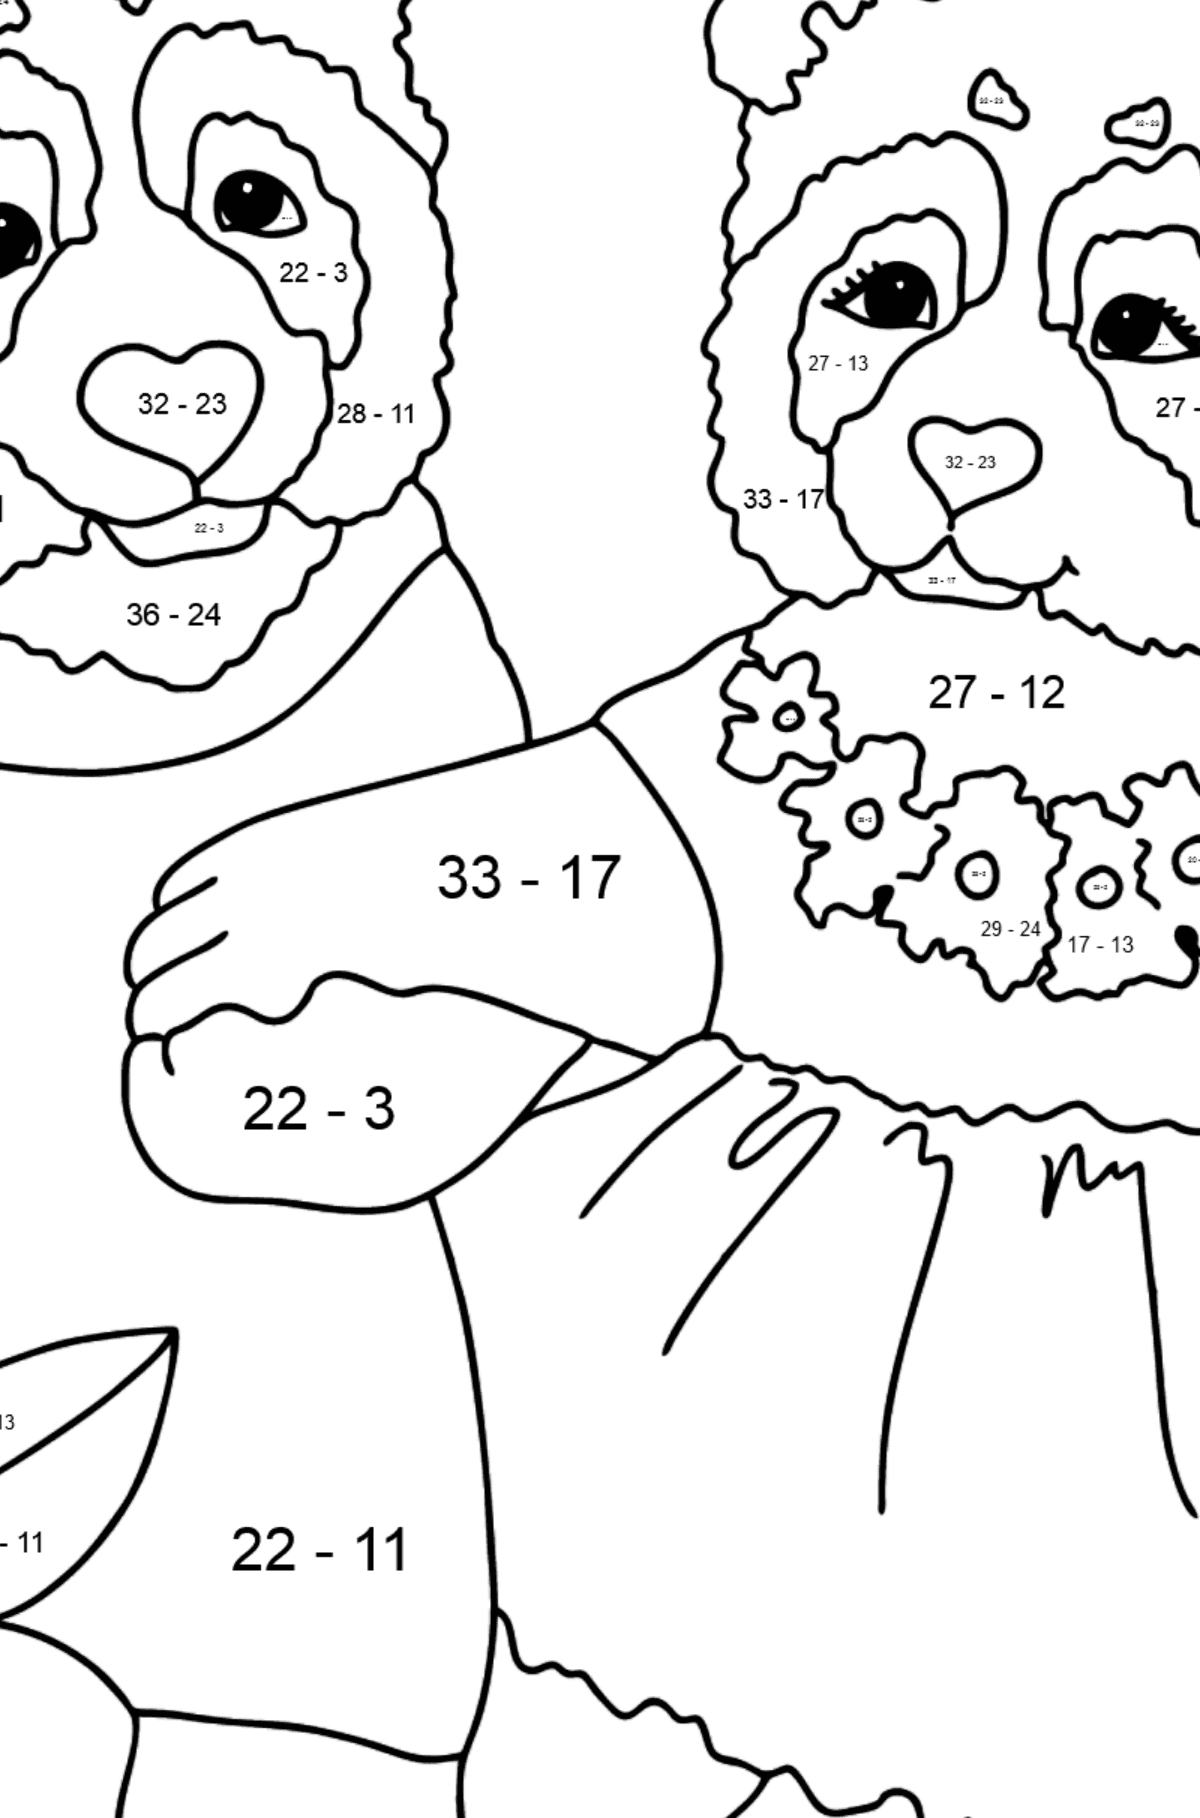 Coloring Page - Pandas are Having a Rest - Math Coloring - Subtraction for Kids